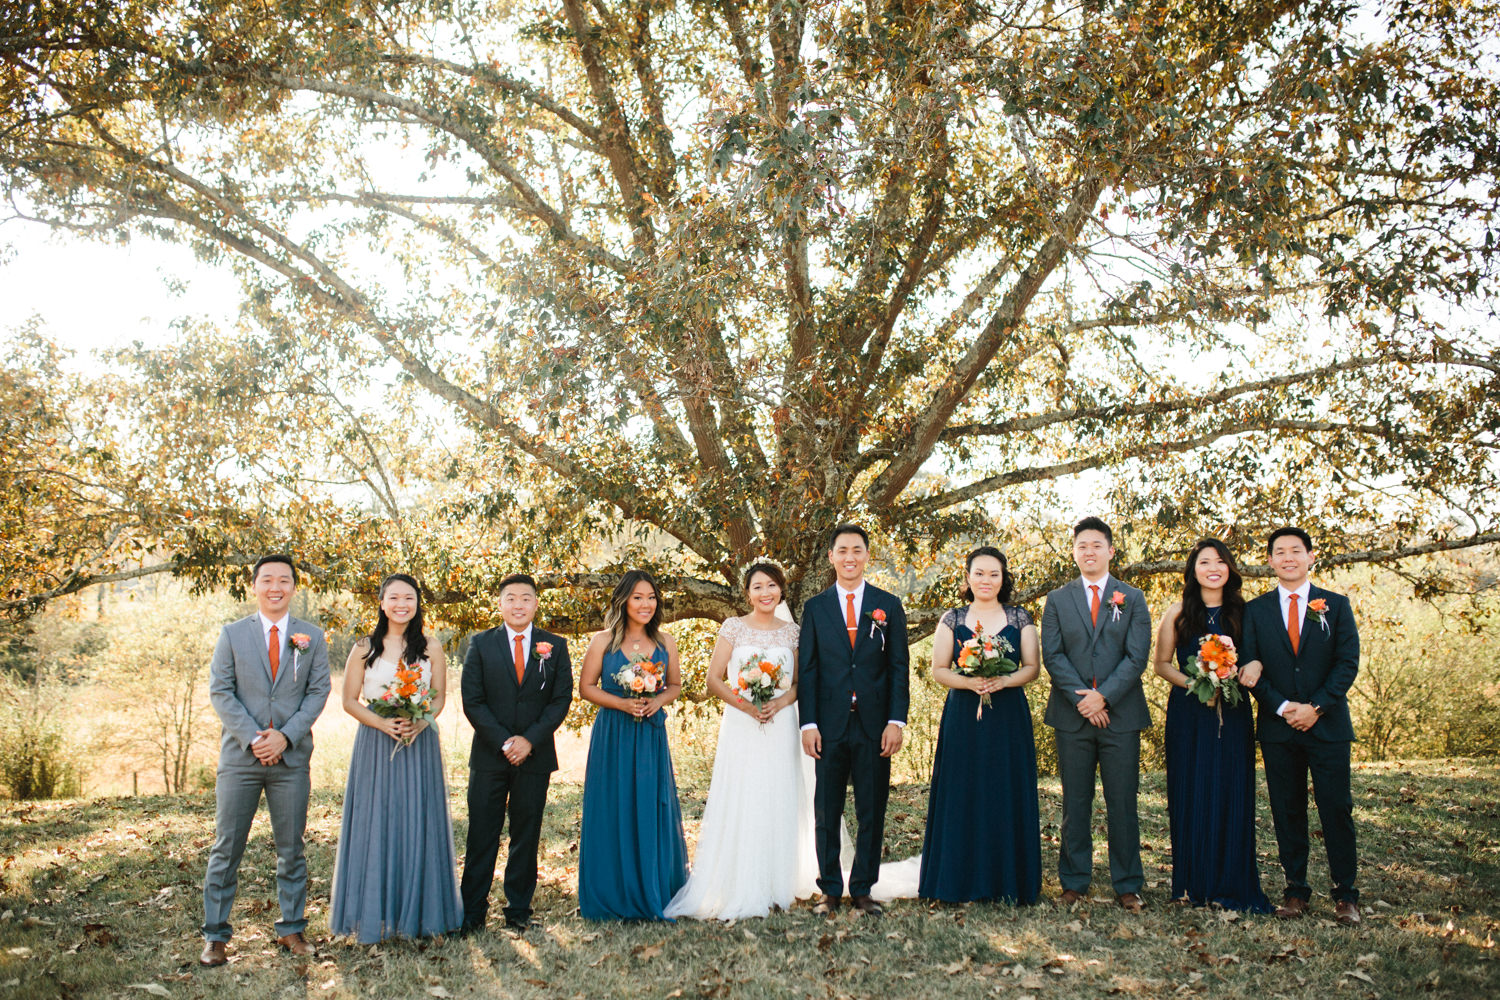 SweetMeadowFarmWedding-3022.jpg